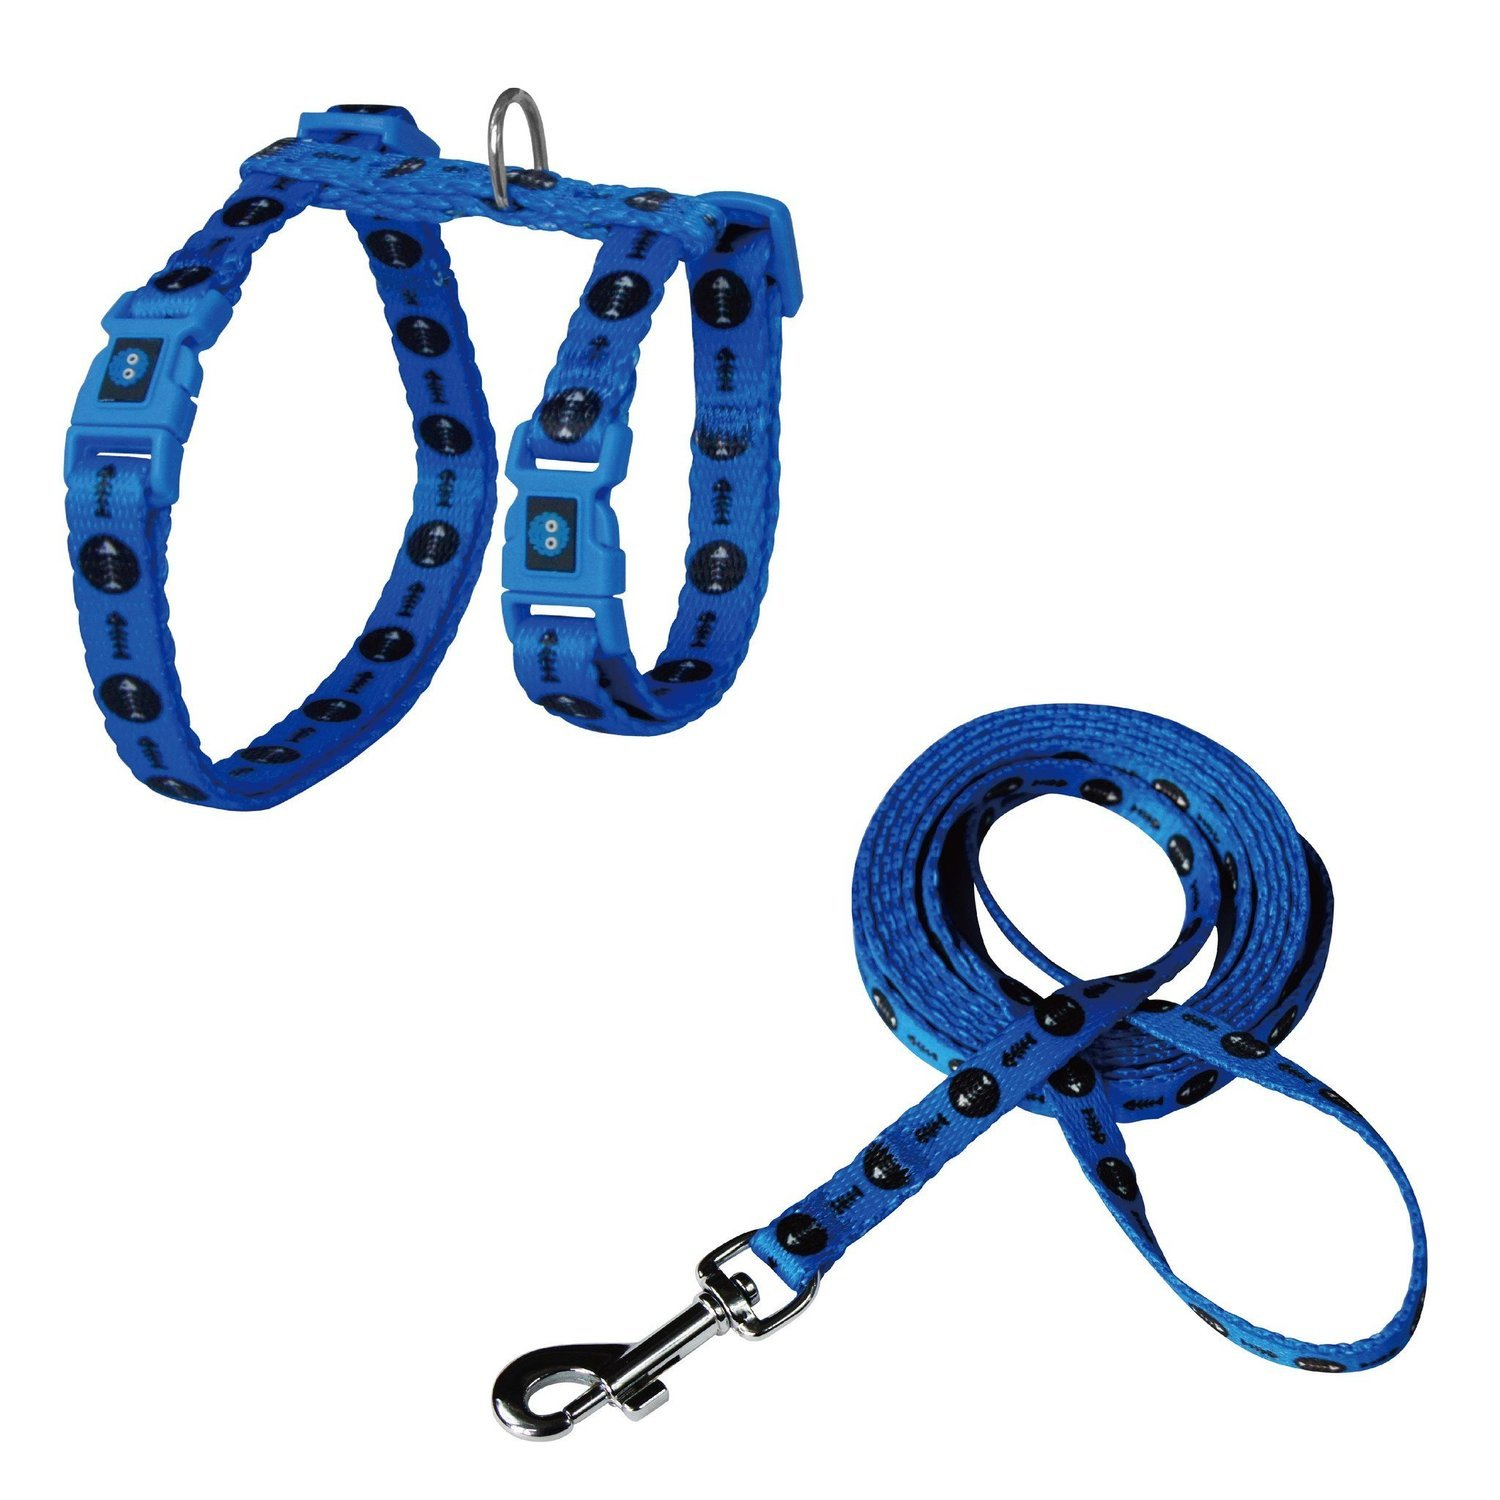 Cat Harness + Leash Combo (Prints)